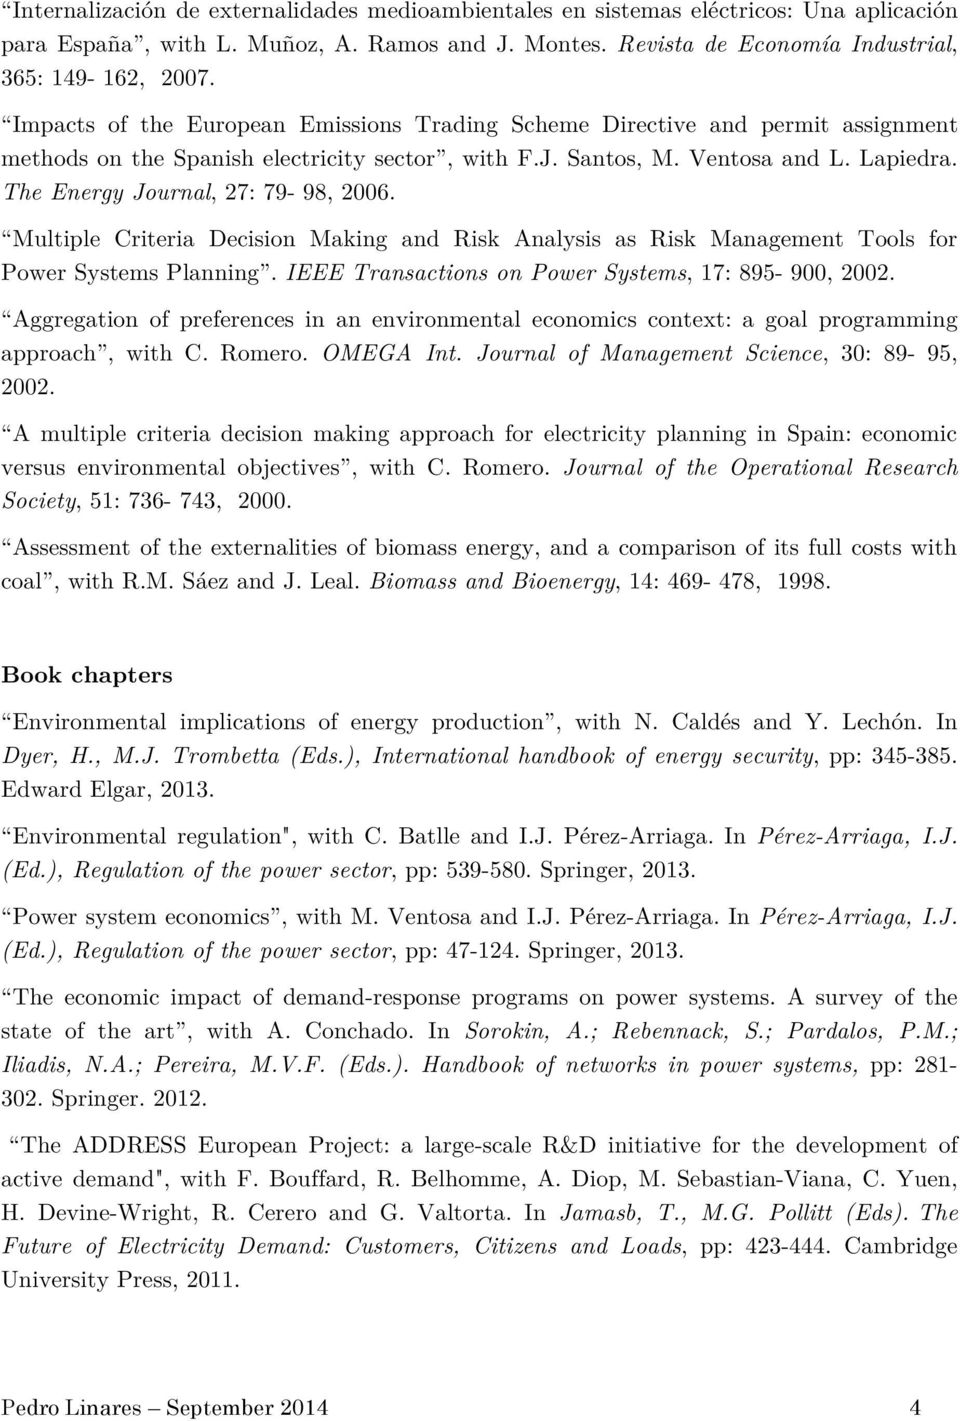 The Energy Journal, 27: 79-98, 2006. Multiple Criteria Decision Making and Risk Analysis as Risk Management Tools for Power Systems Planning. IEEE Transactions on Power Systems, 17: 895-900, 2002.